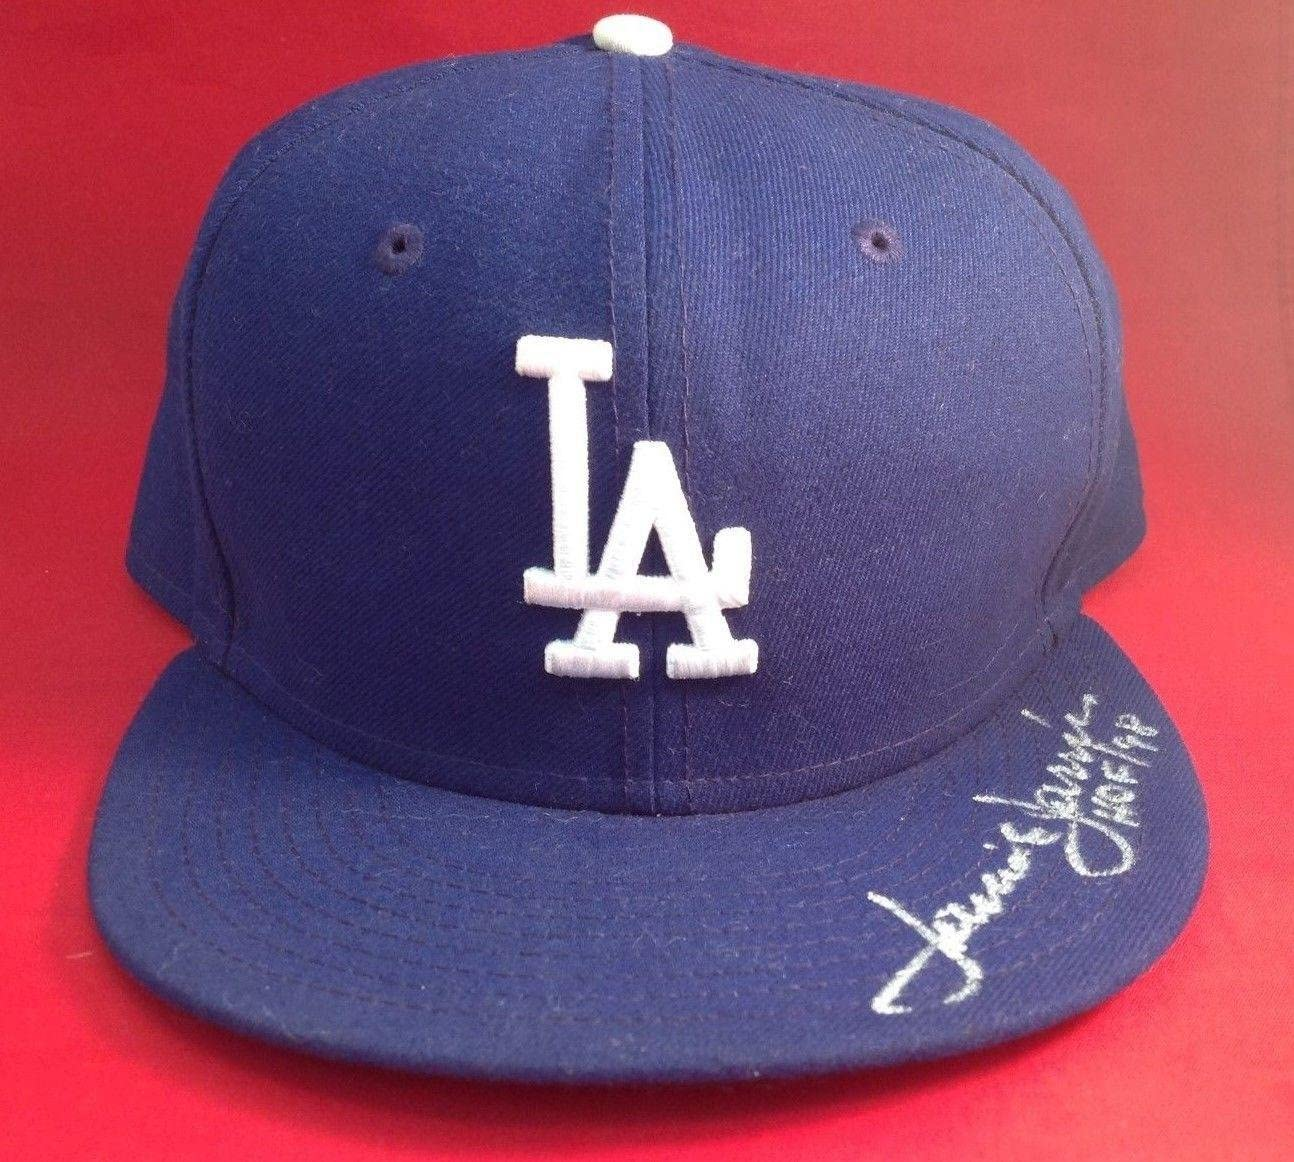 Jaime Jarrin signed Los Angeles Dodgers Baseball Hat Cap COA# X32278 - PSA/DNA Certified - Autographed Hats